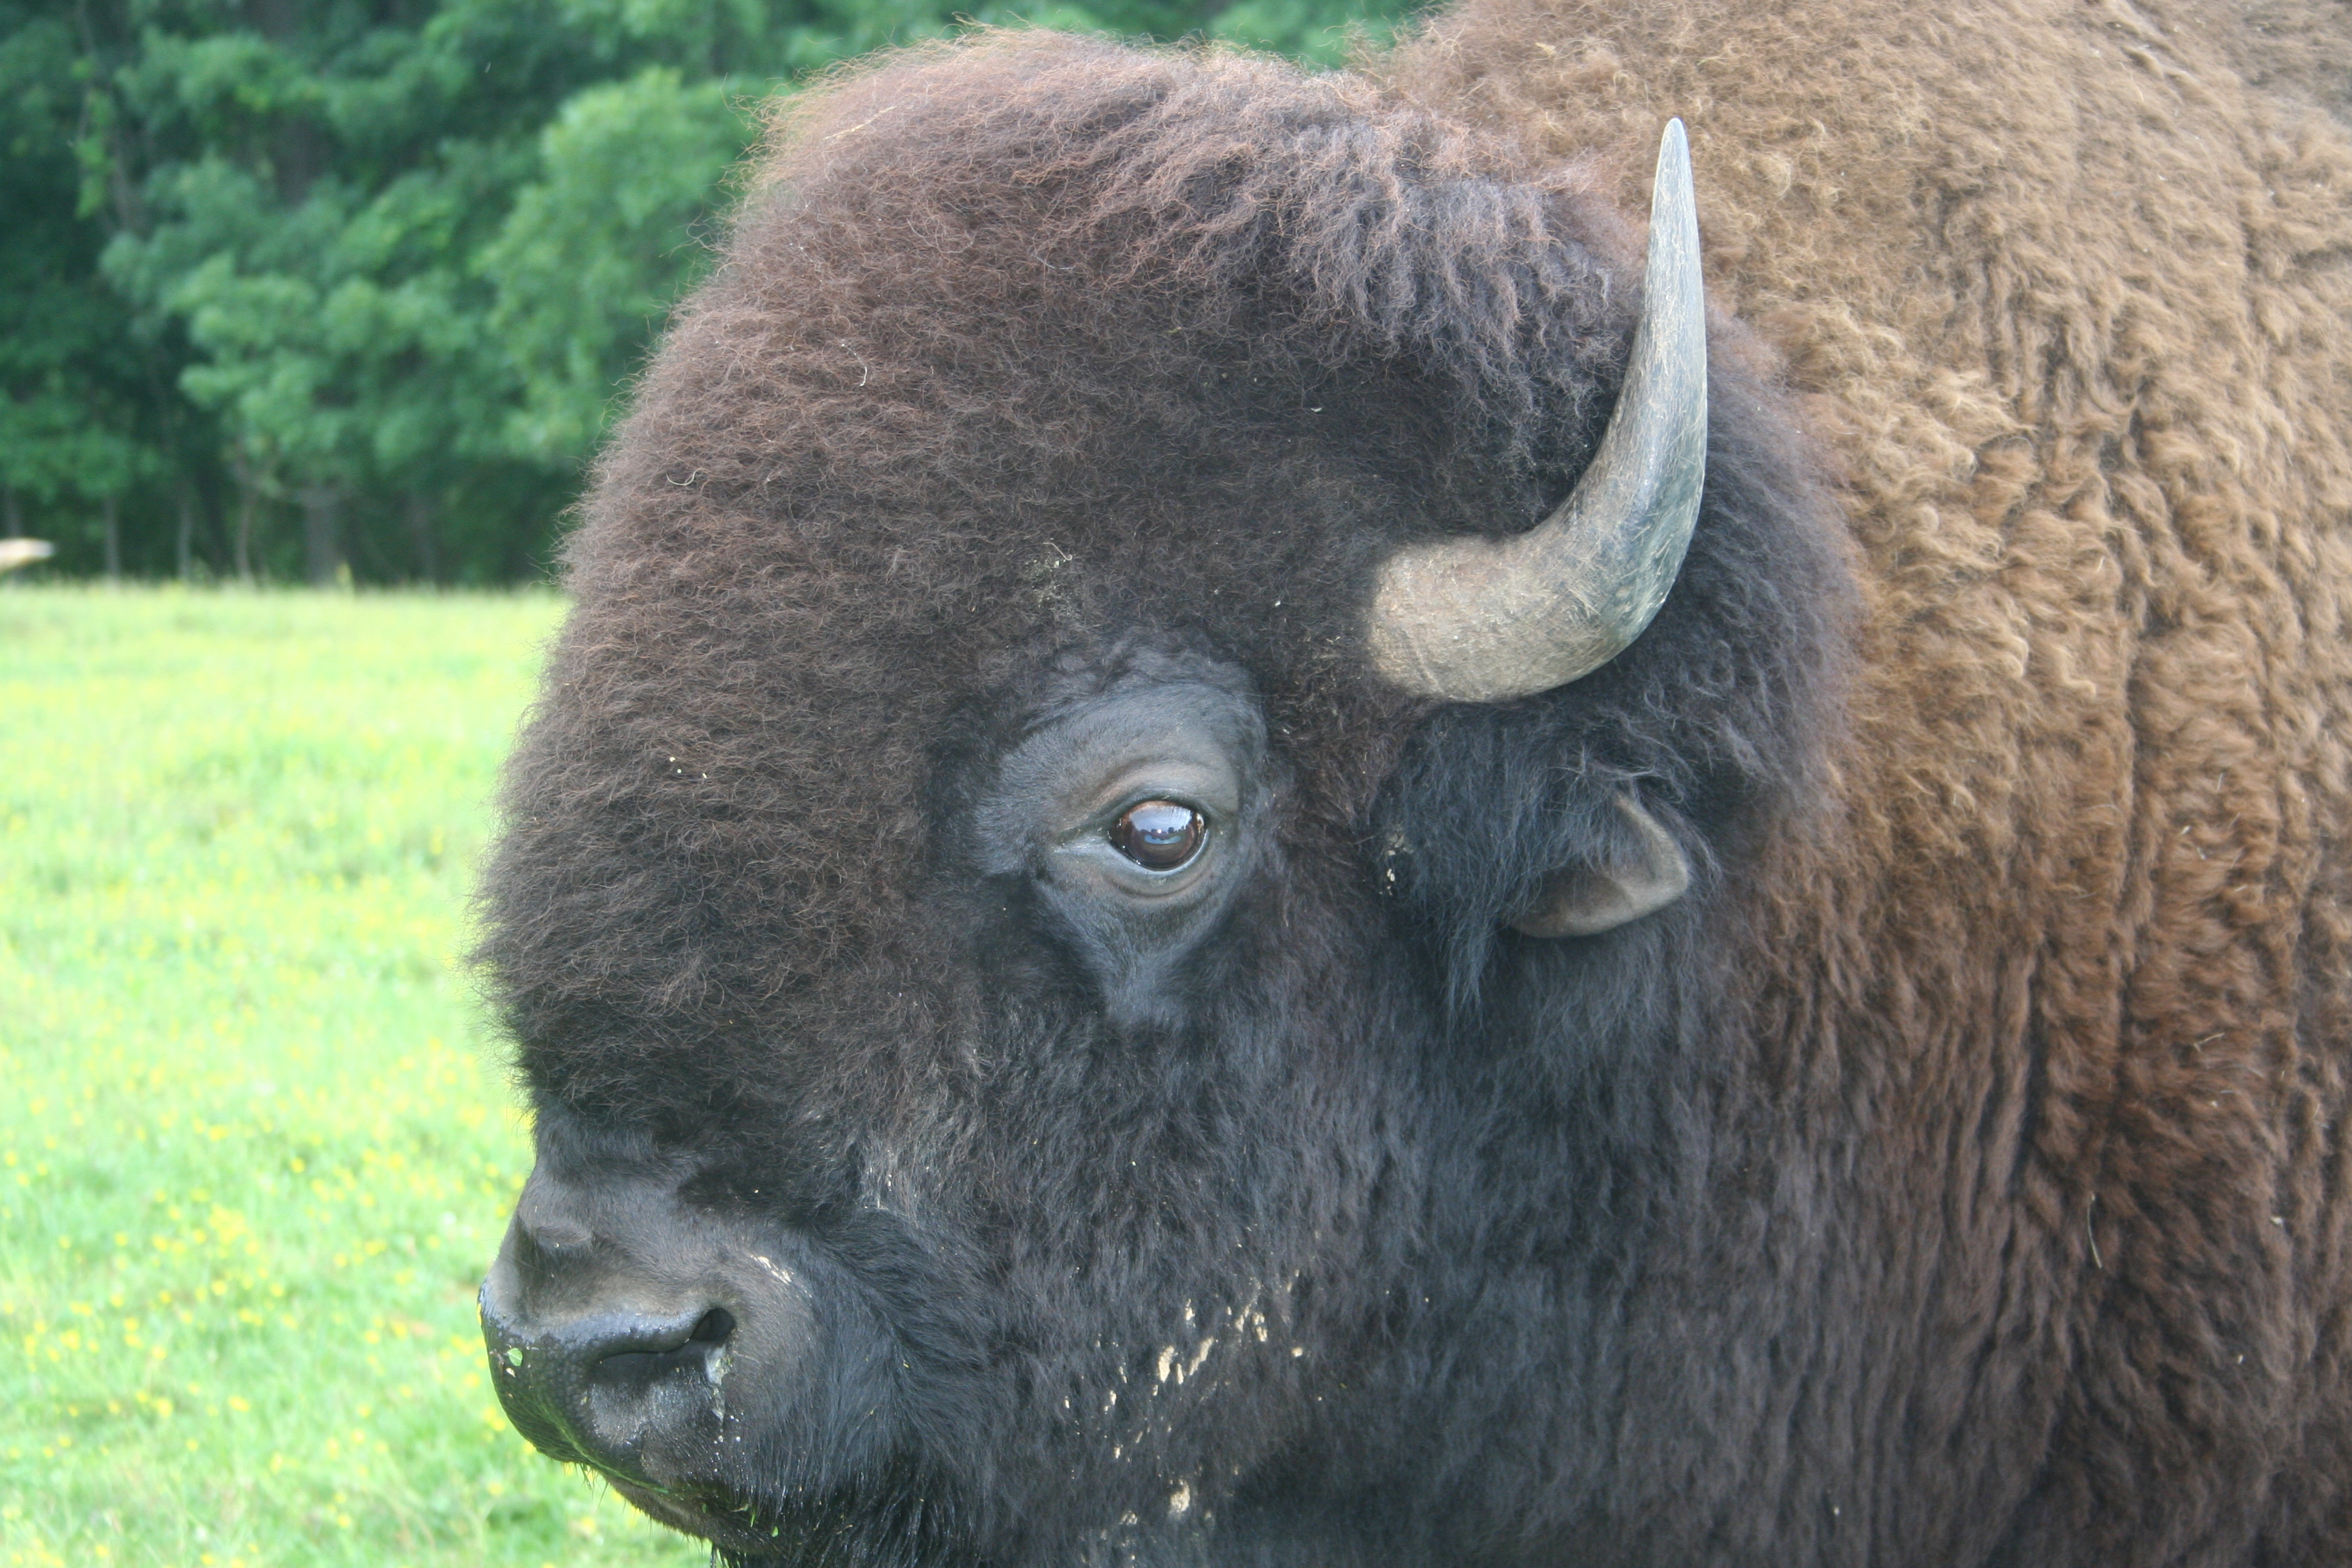 The head of his herd.  American Bison (Bison bison), commonly called buffalo or American buffalo.  These magnificent animals once roamed in huge herds across the Great Plains of North America.   A combination of circumstances (mostly human) brought them to near extinction, but careful conservation has brought them back in large numbers.  We have usually had a small group of these beautiful monsters.